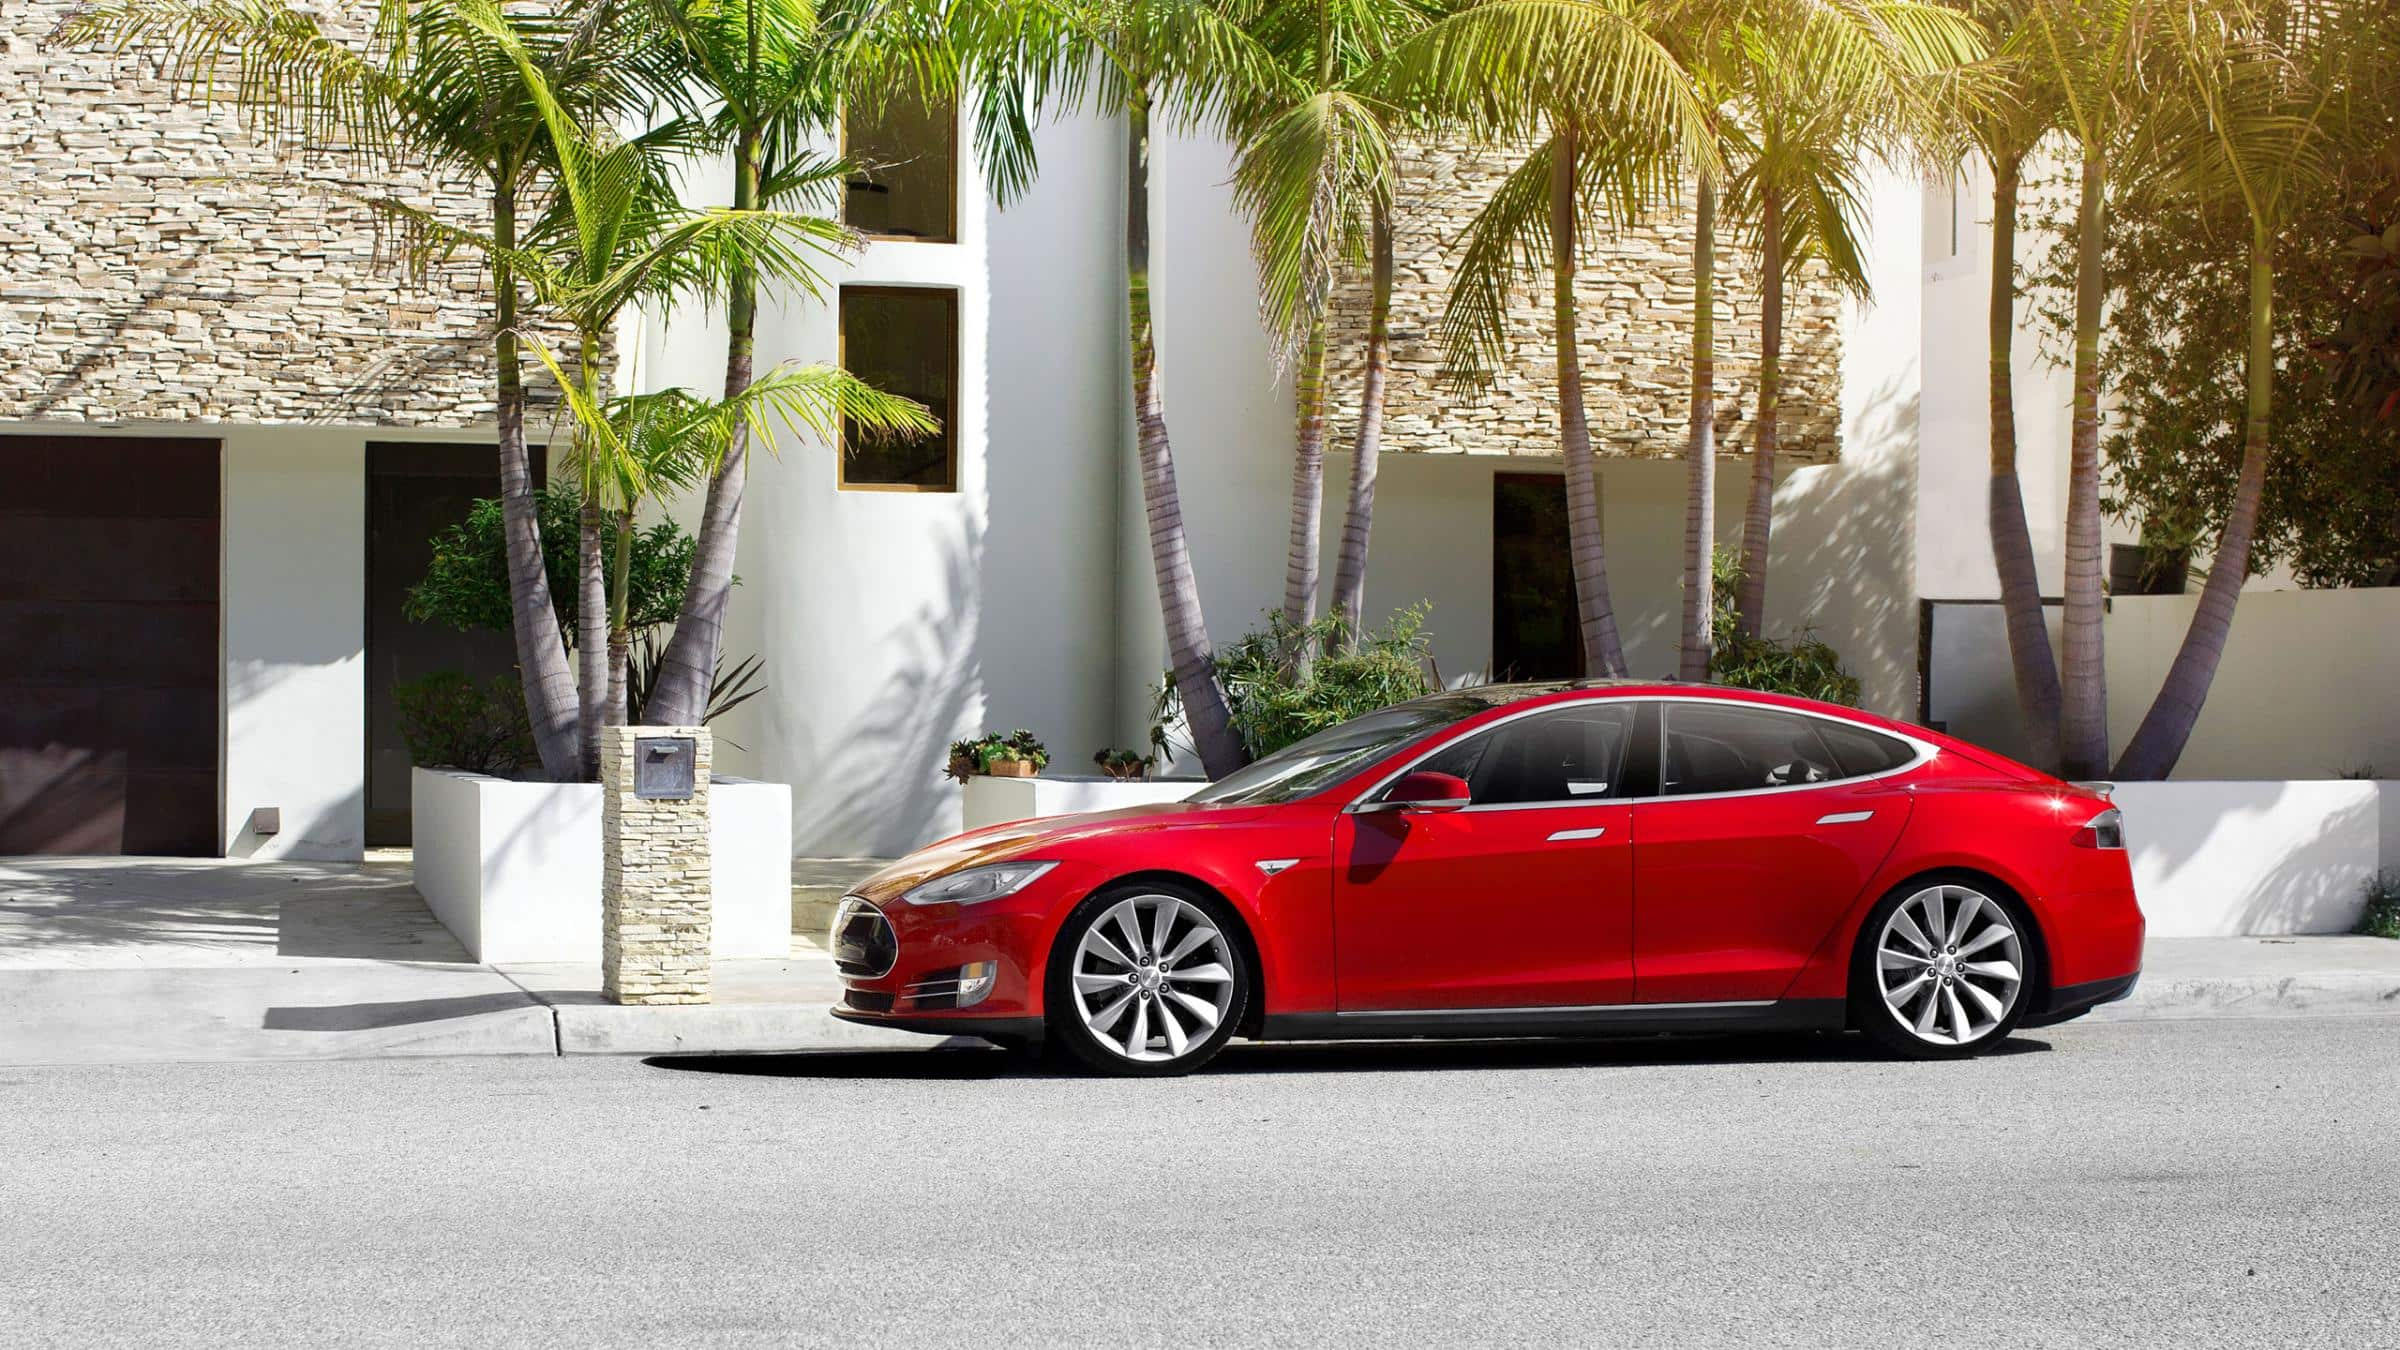 http://www.teslamotors.com/sites/default/files/blog_images/model-s-photo-gallery-05.jpg